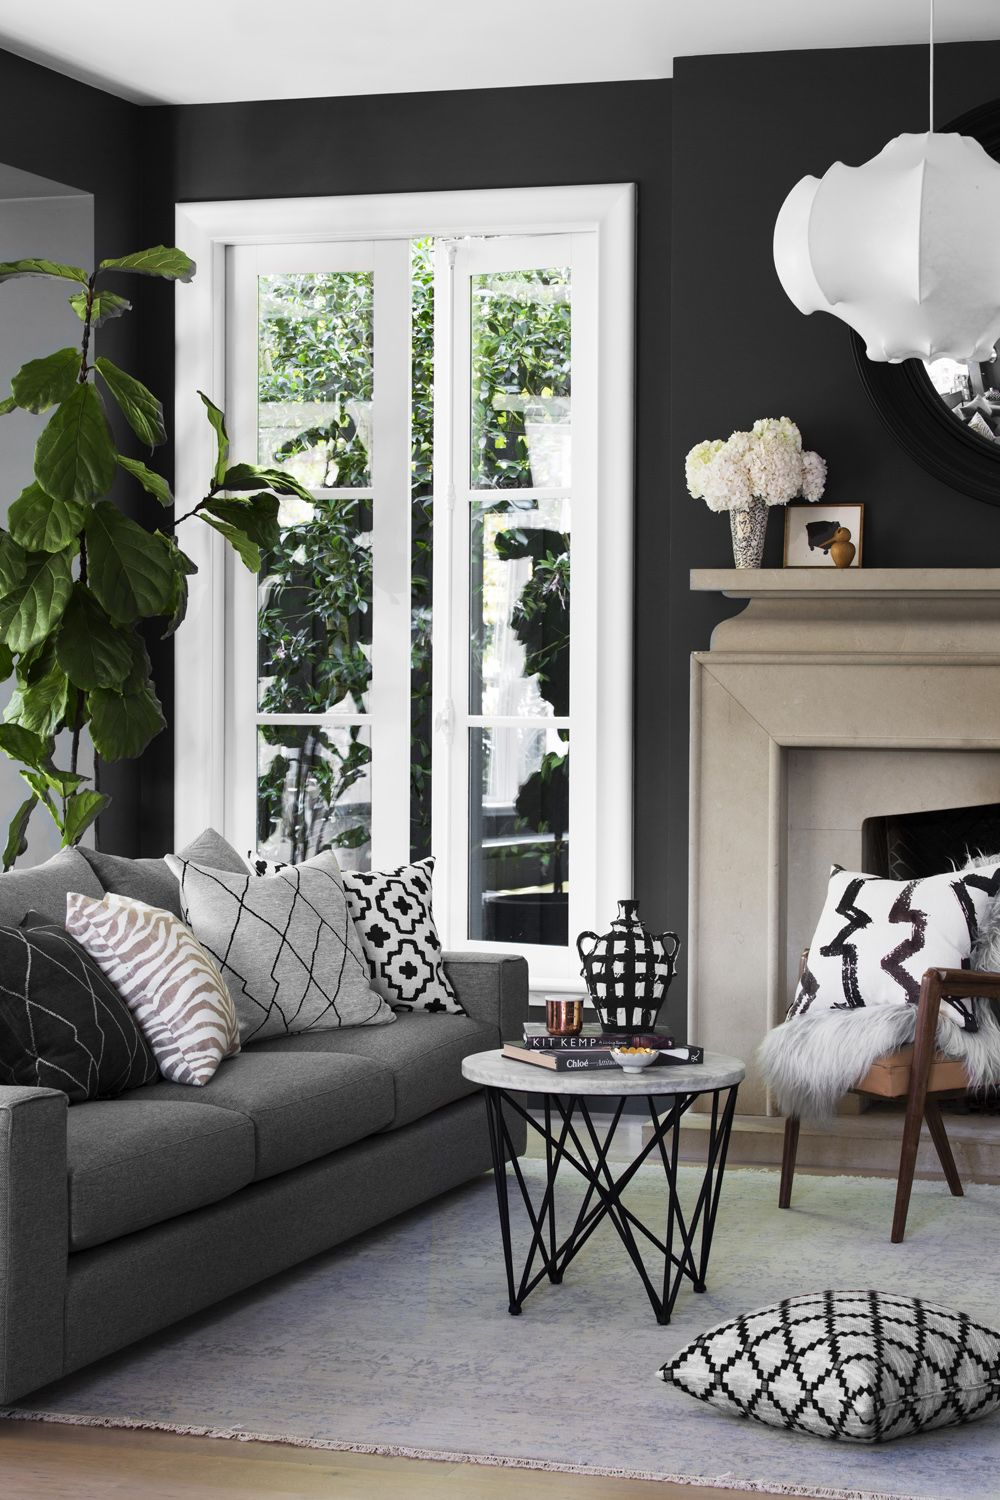 20+ Exotic Dark Living Room Design Ideas | Grey couches, Dark walls ...